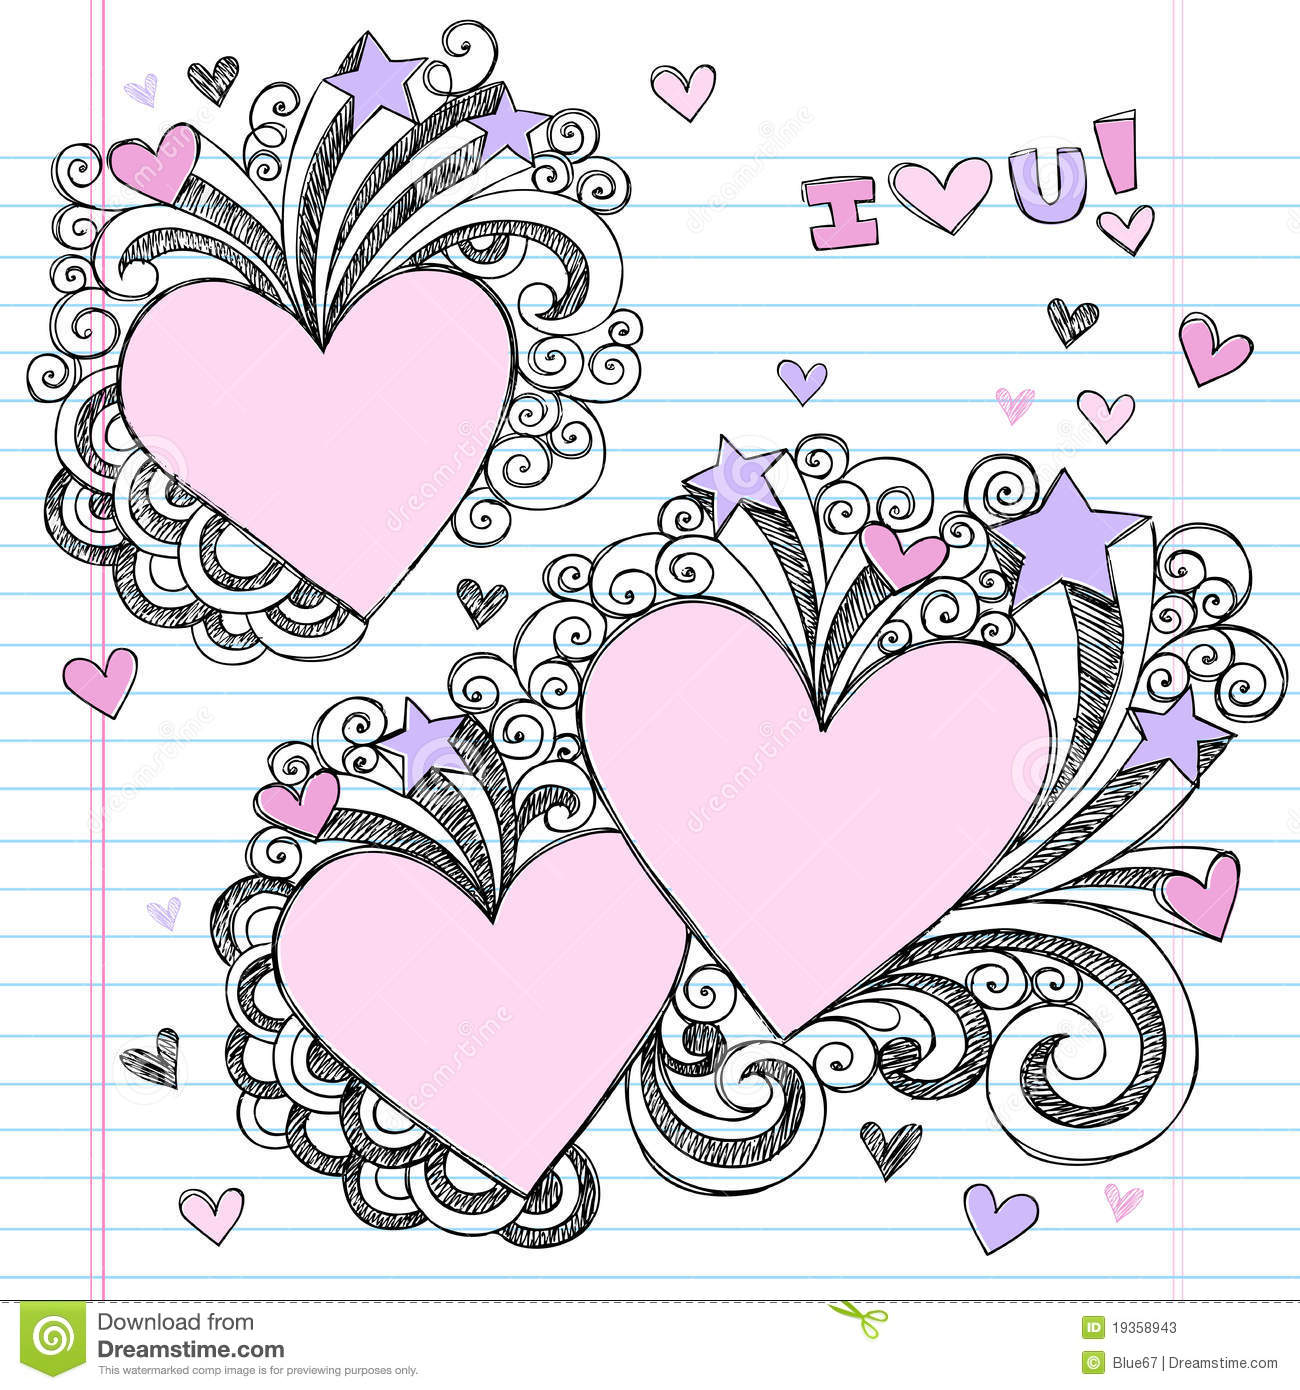 Hand drawn sketchy i love you doodles stock photos image for Love doodles to draw